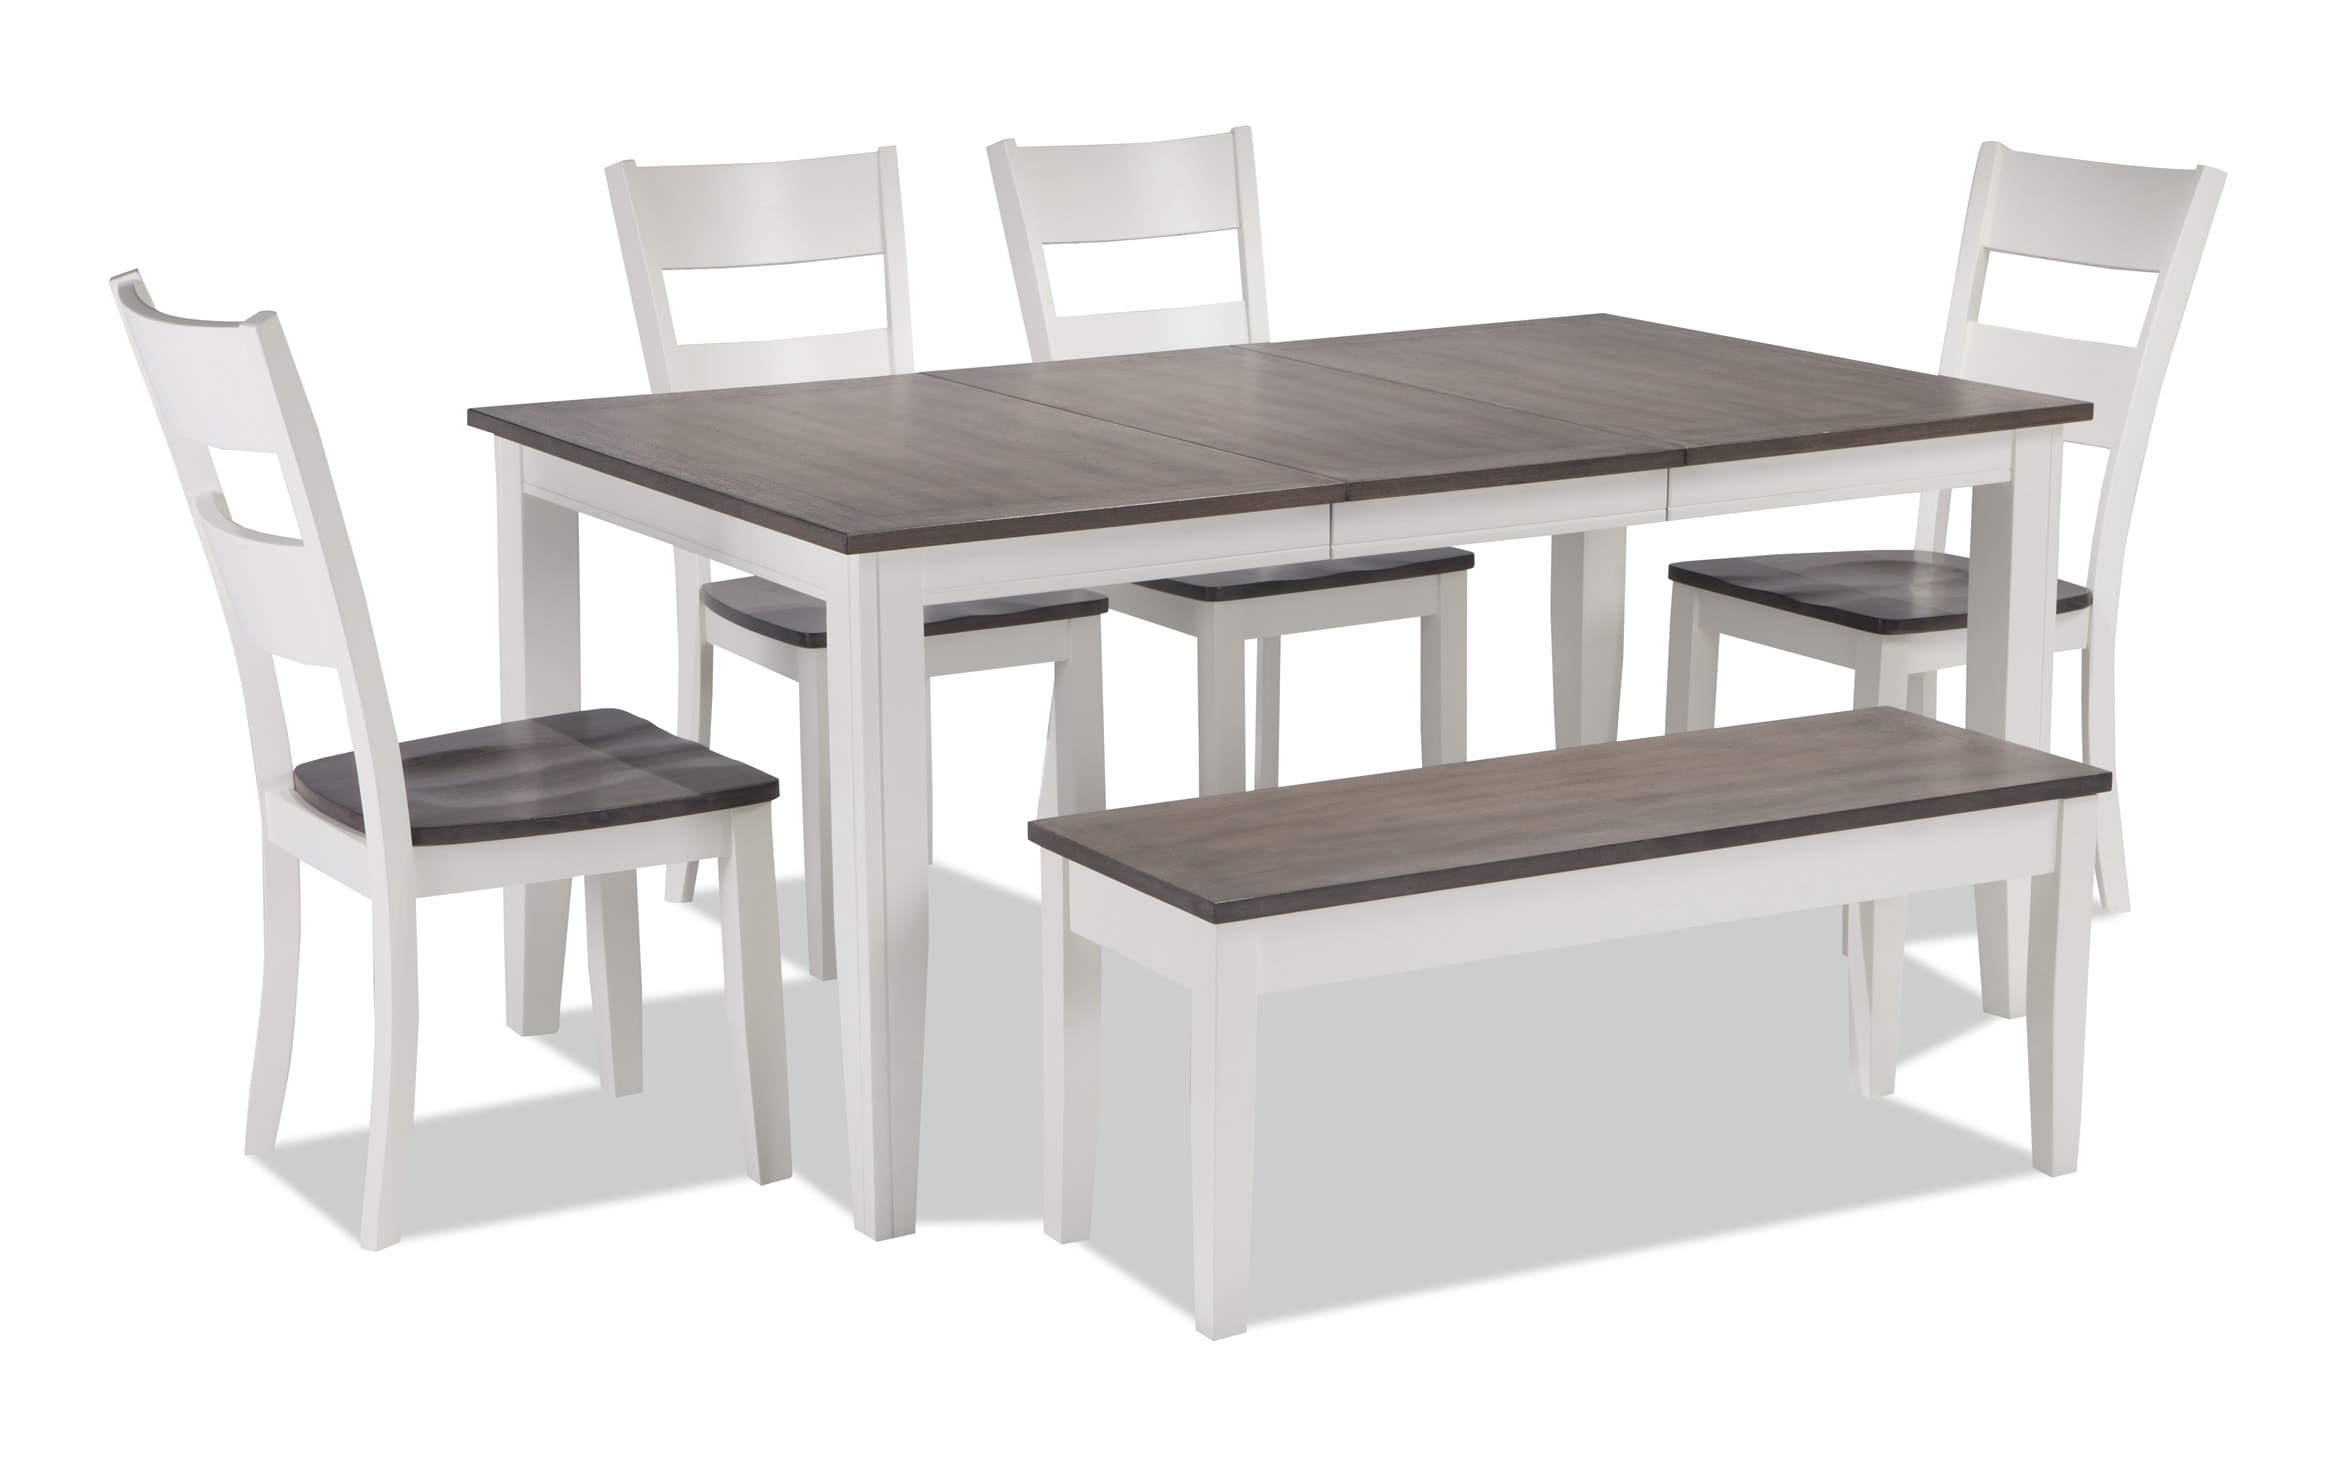 Blake Gray White 6 Piece Dining Set With Storage Bench Bobs Com